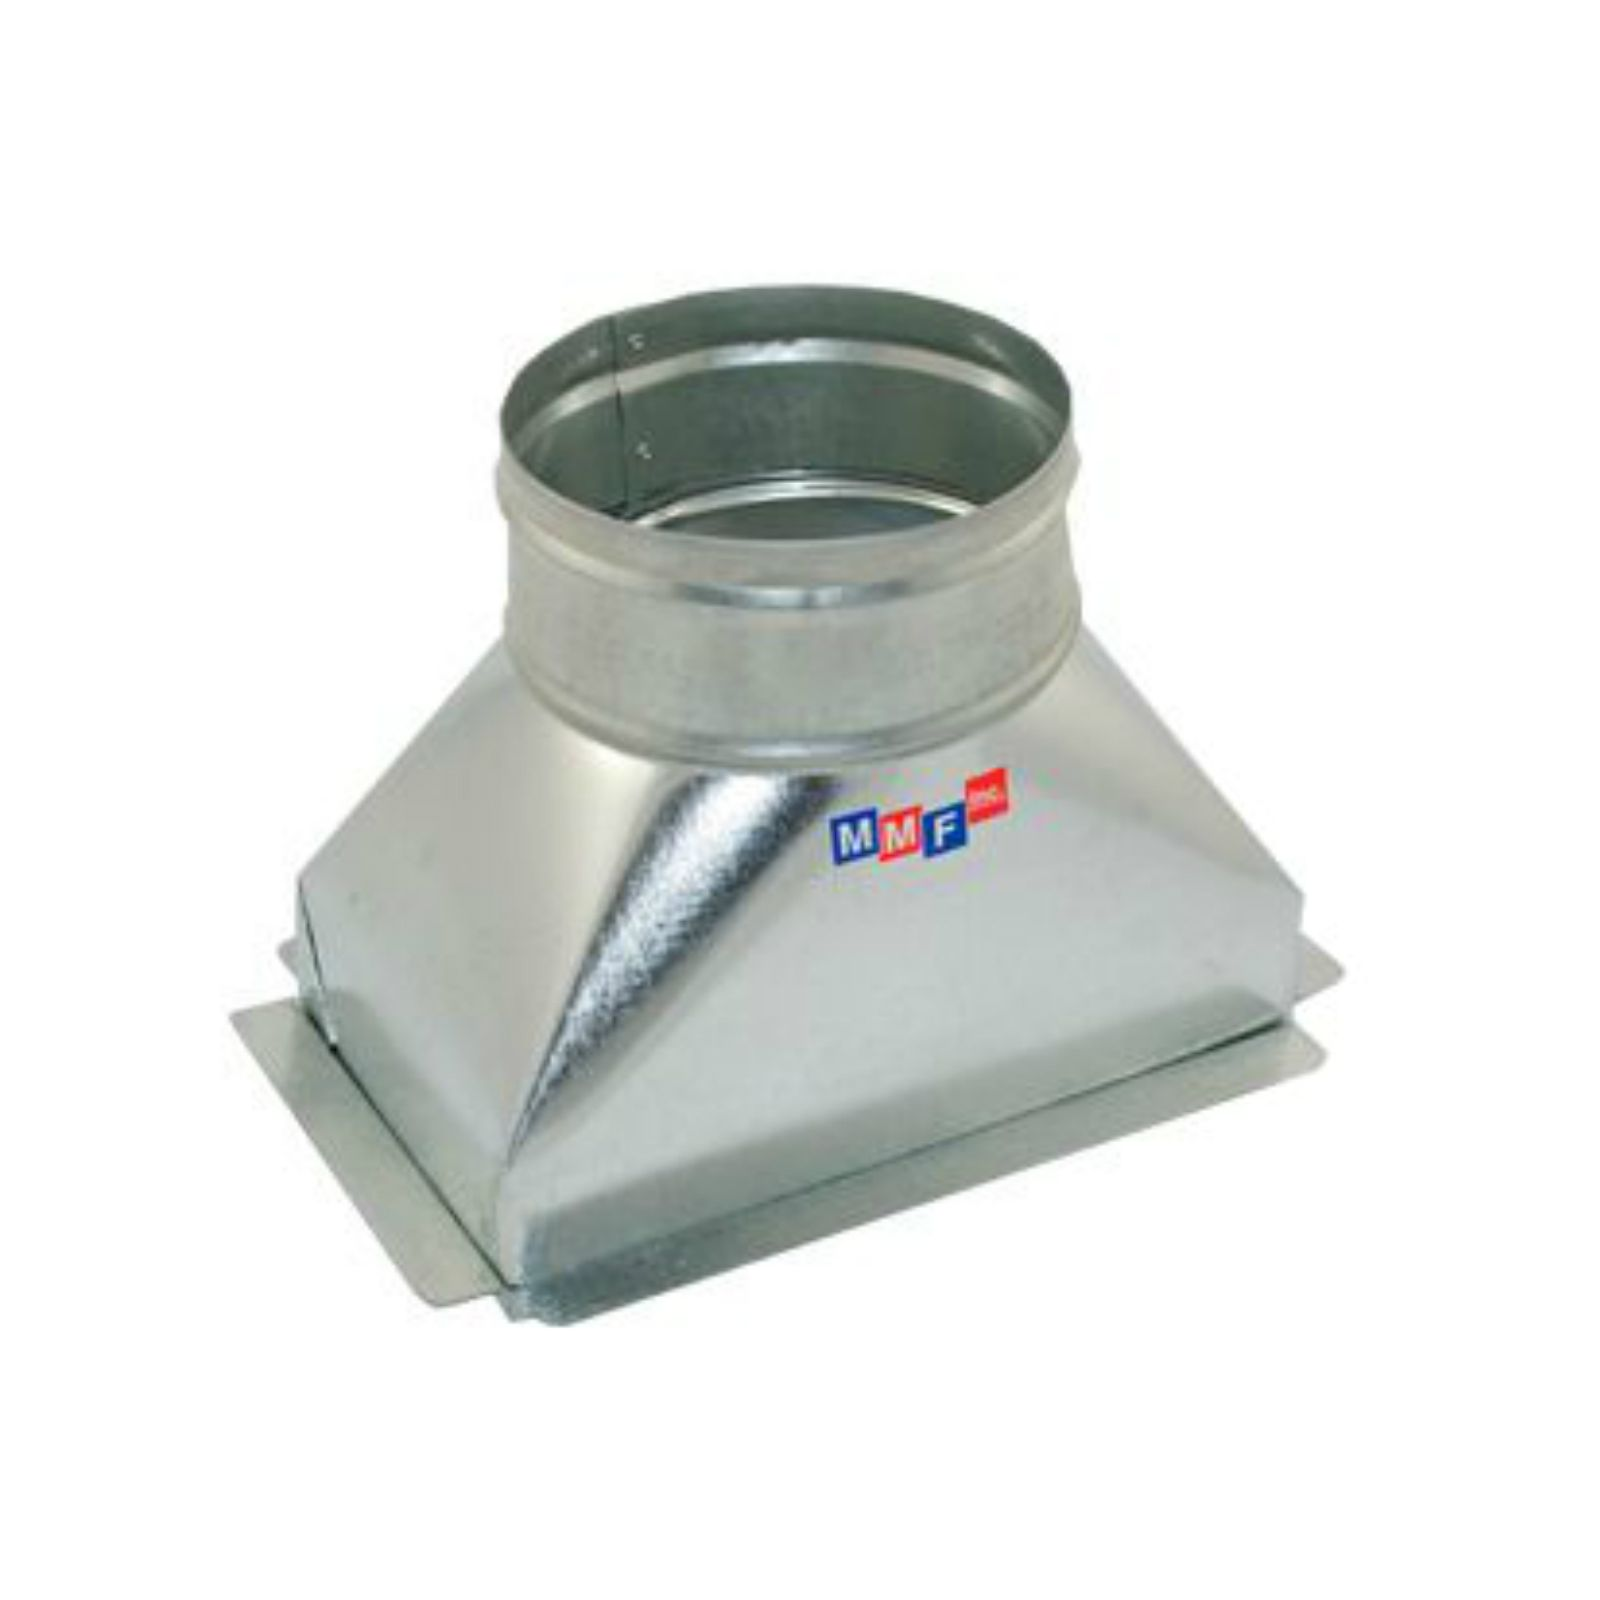 "Modular Metal BTSFG080405P - Sealed Floor Box - 30 Gauge - With Plaster Ground Flange 08"" X 04"" To 05"" Round"